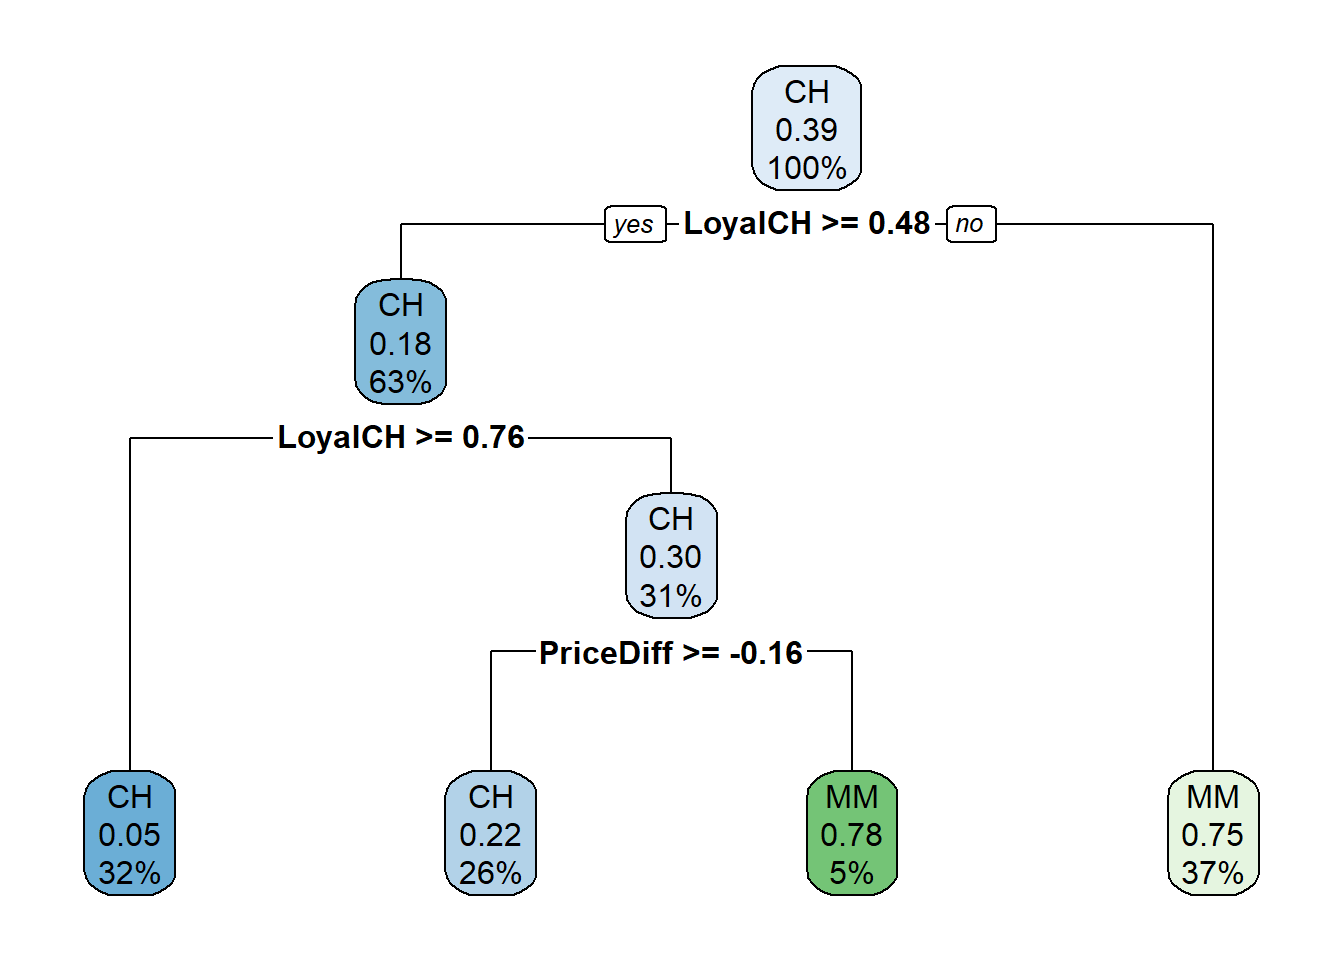 R how to make tree model with 3 splits